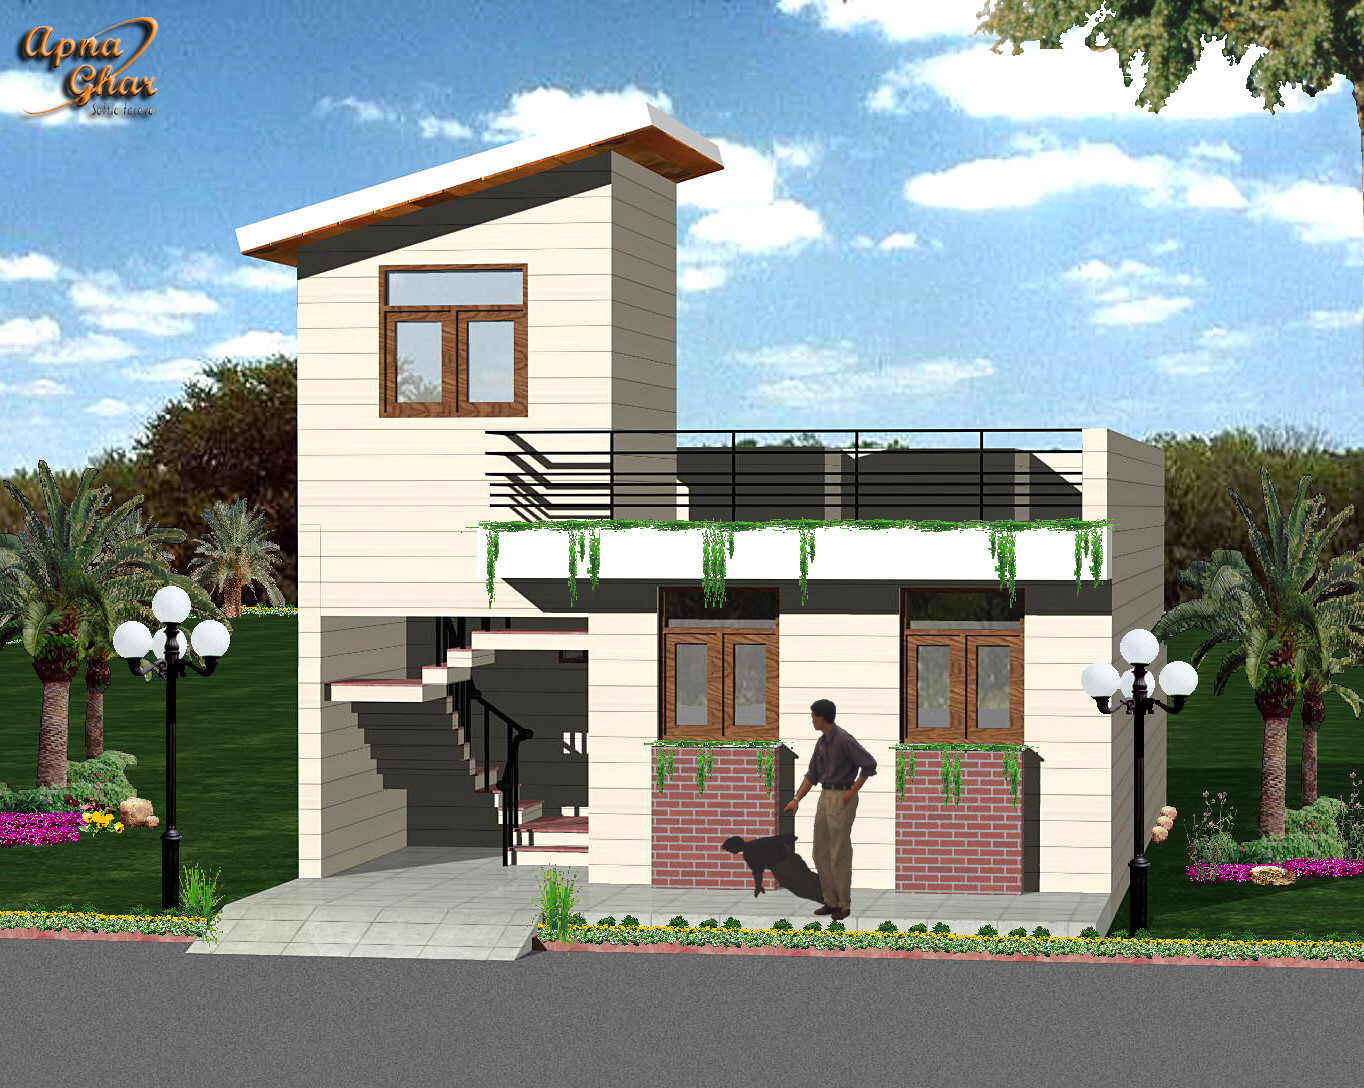 D Front Elevation Ground Floor : Apnaghar the online architectural consultants «